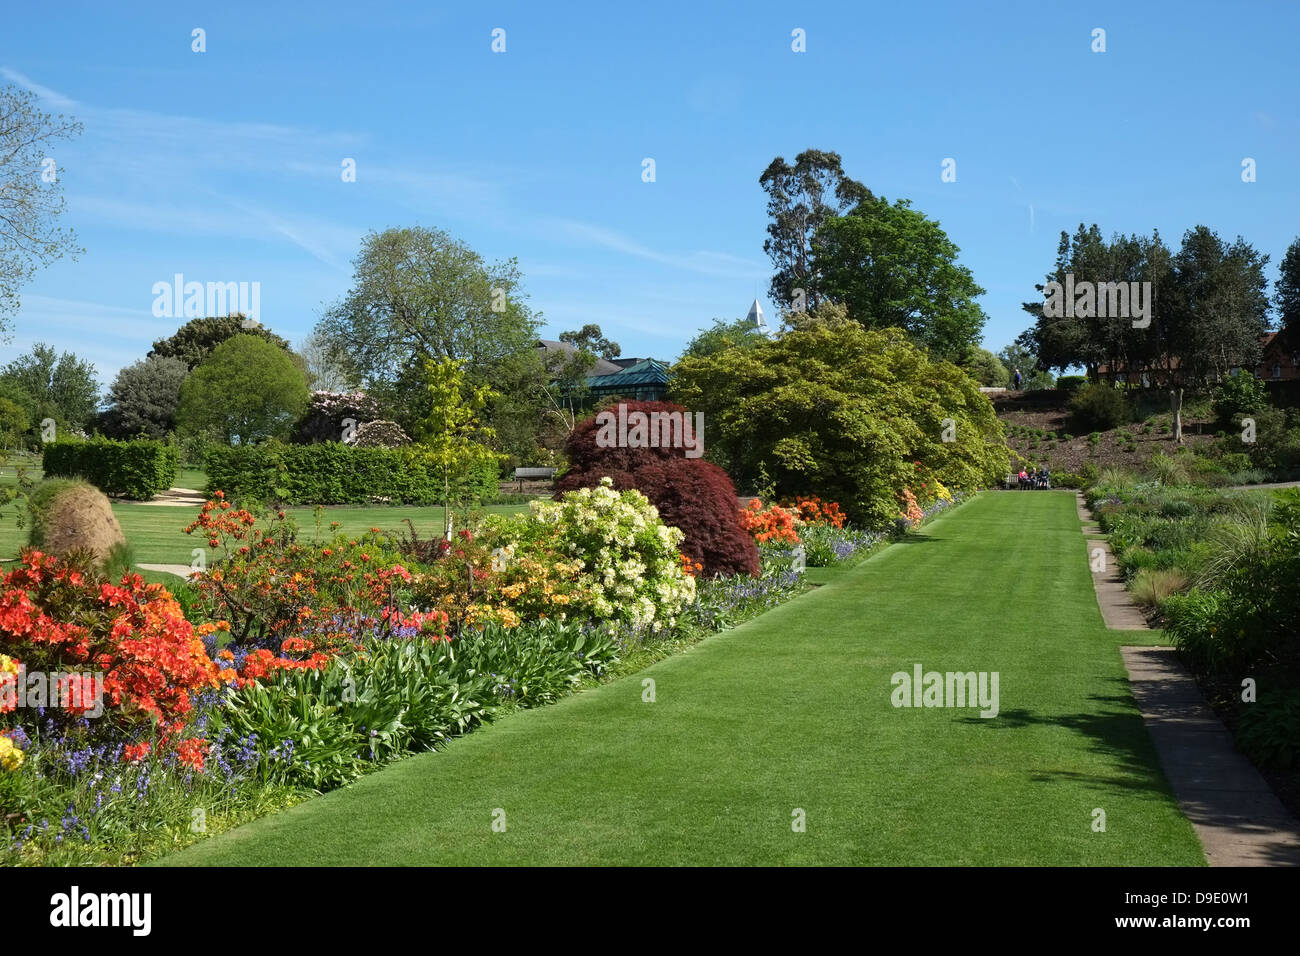 uk cheshire ness botanic gardens stock photo royalty free image 57471037 alamy